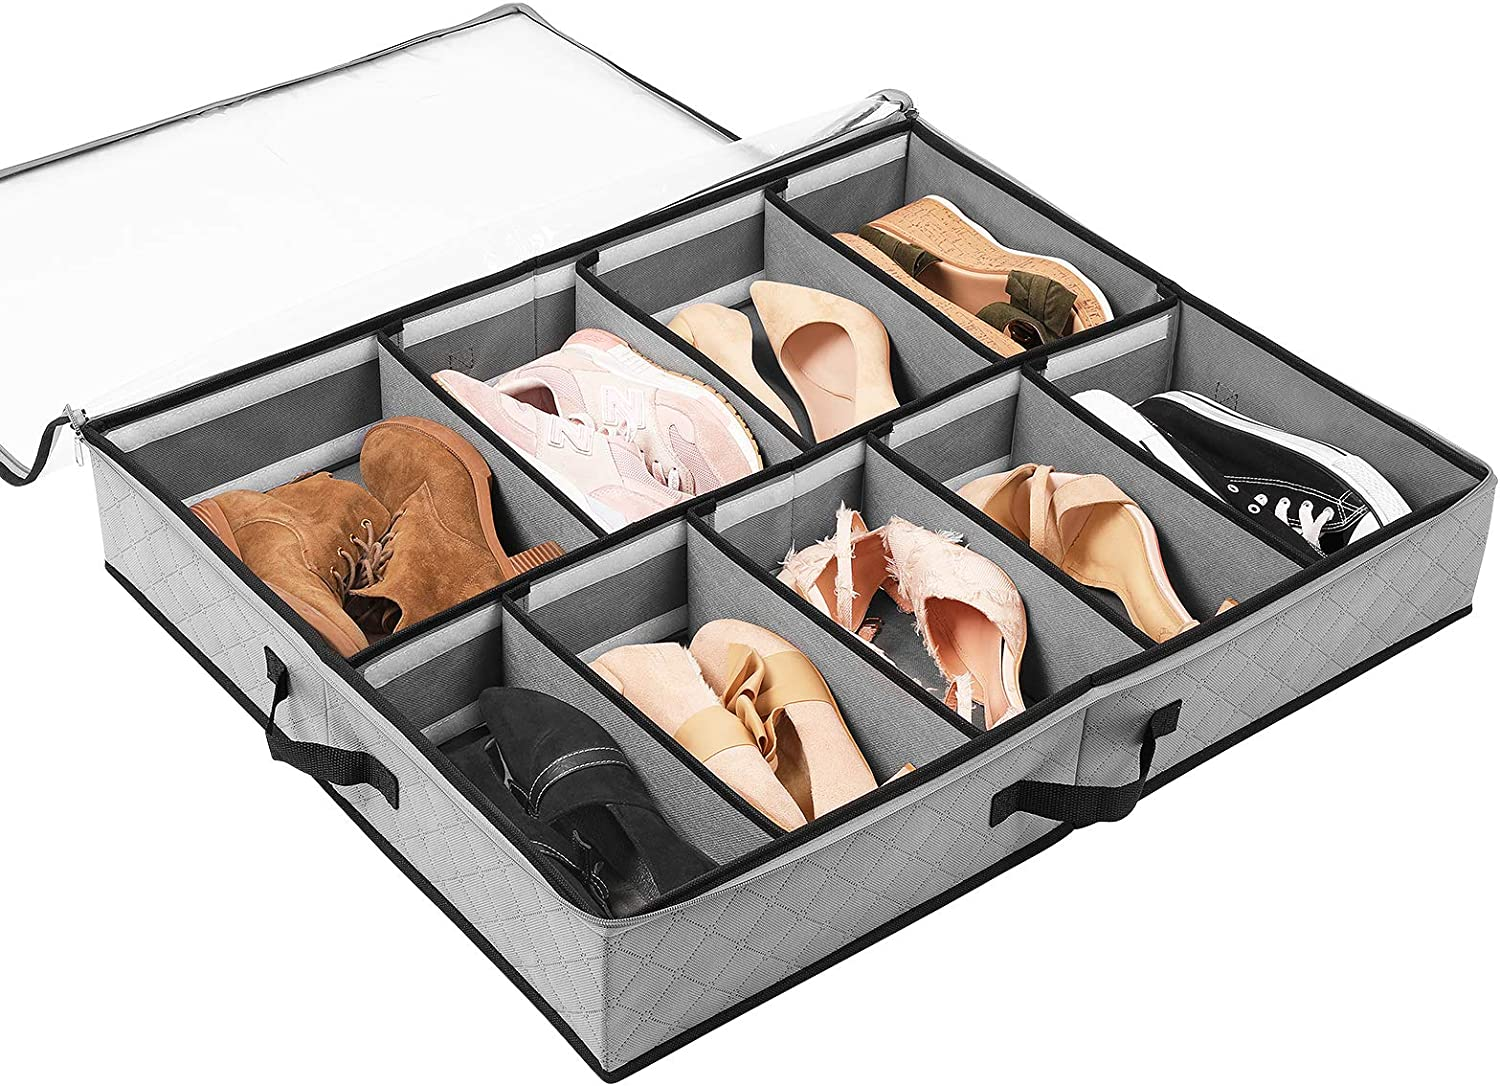 SOLEDI Under Bed Storage Containers for Shoe Storage Can be Stored Under the Bed and the Top of the Closet, Sturdy Large-Capacity Shoe Storage Box with a Transparent Window, 1 Pack